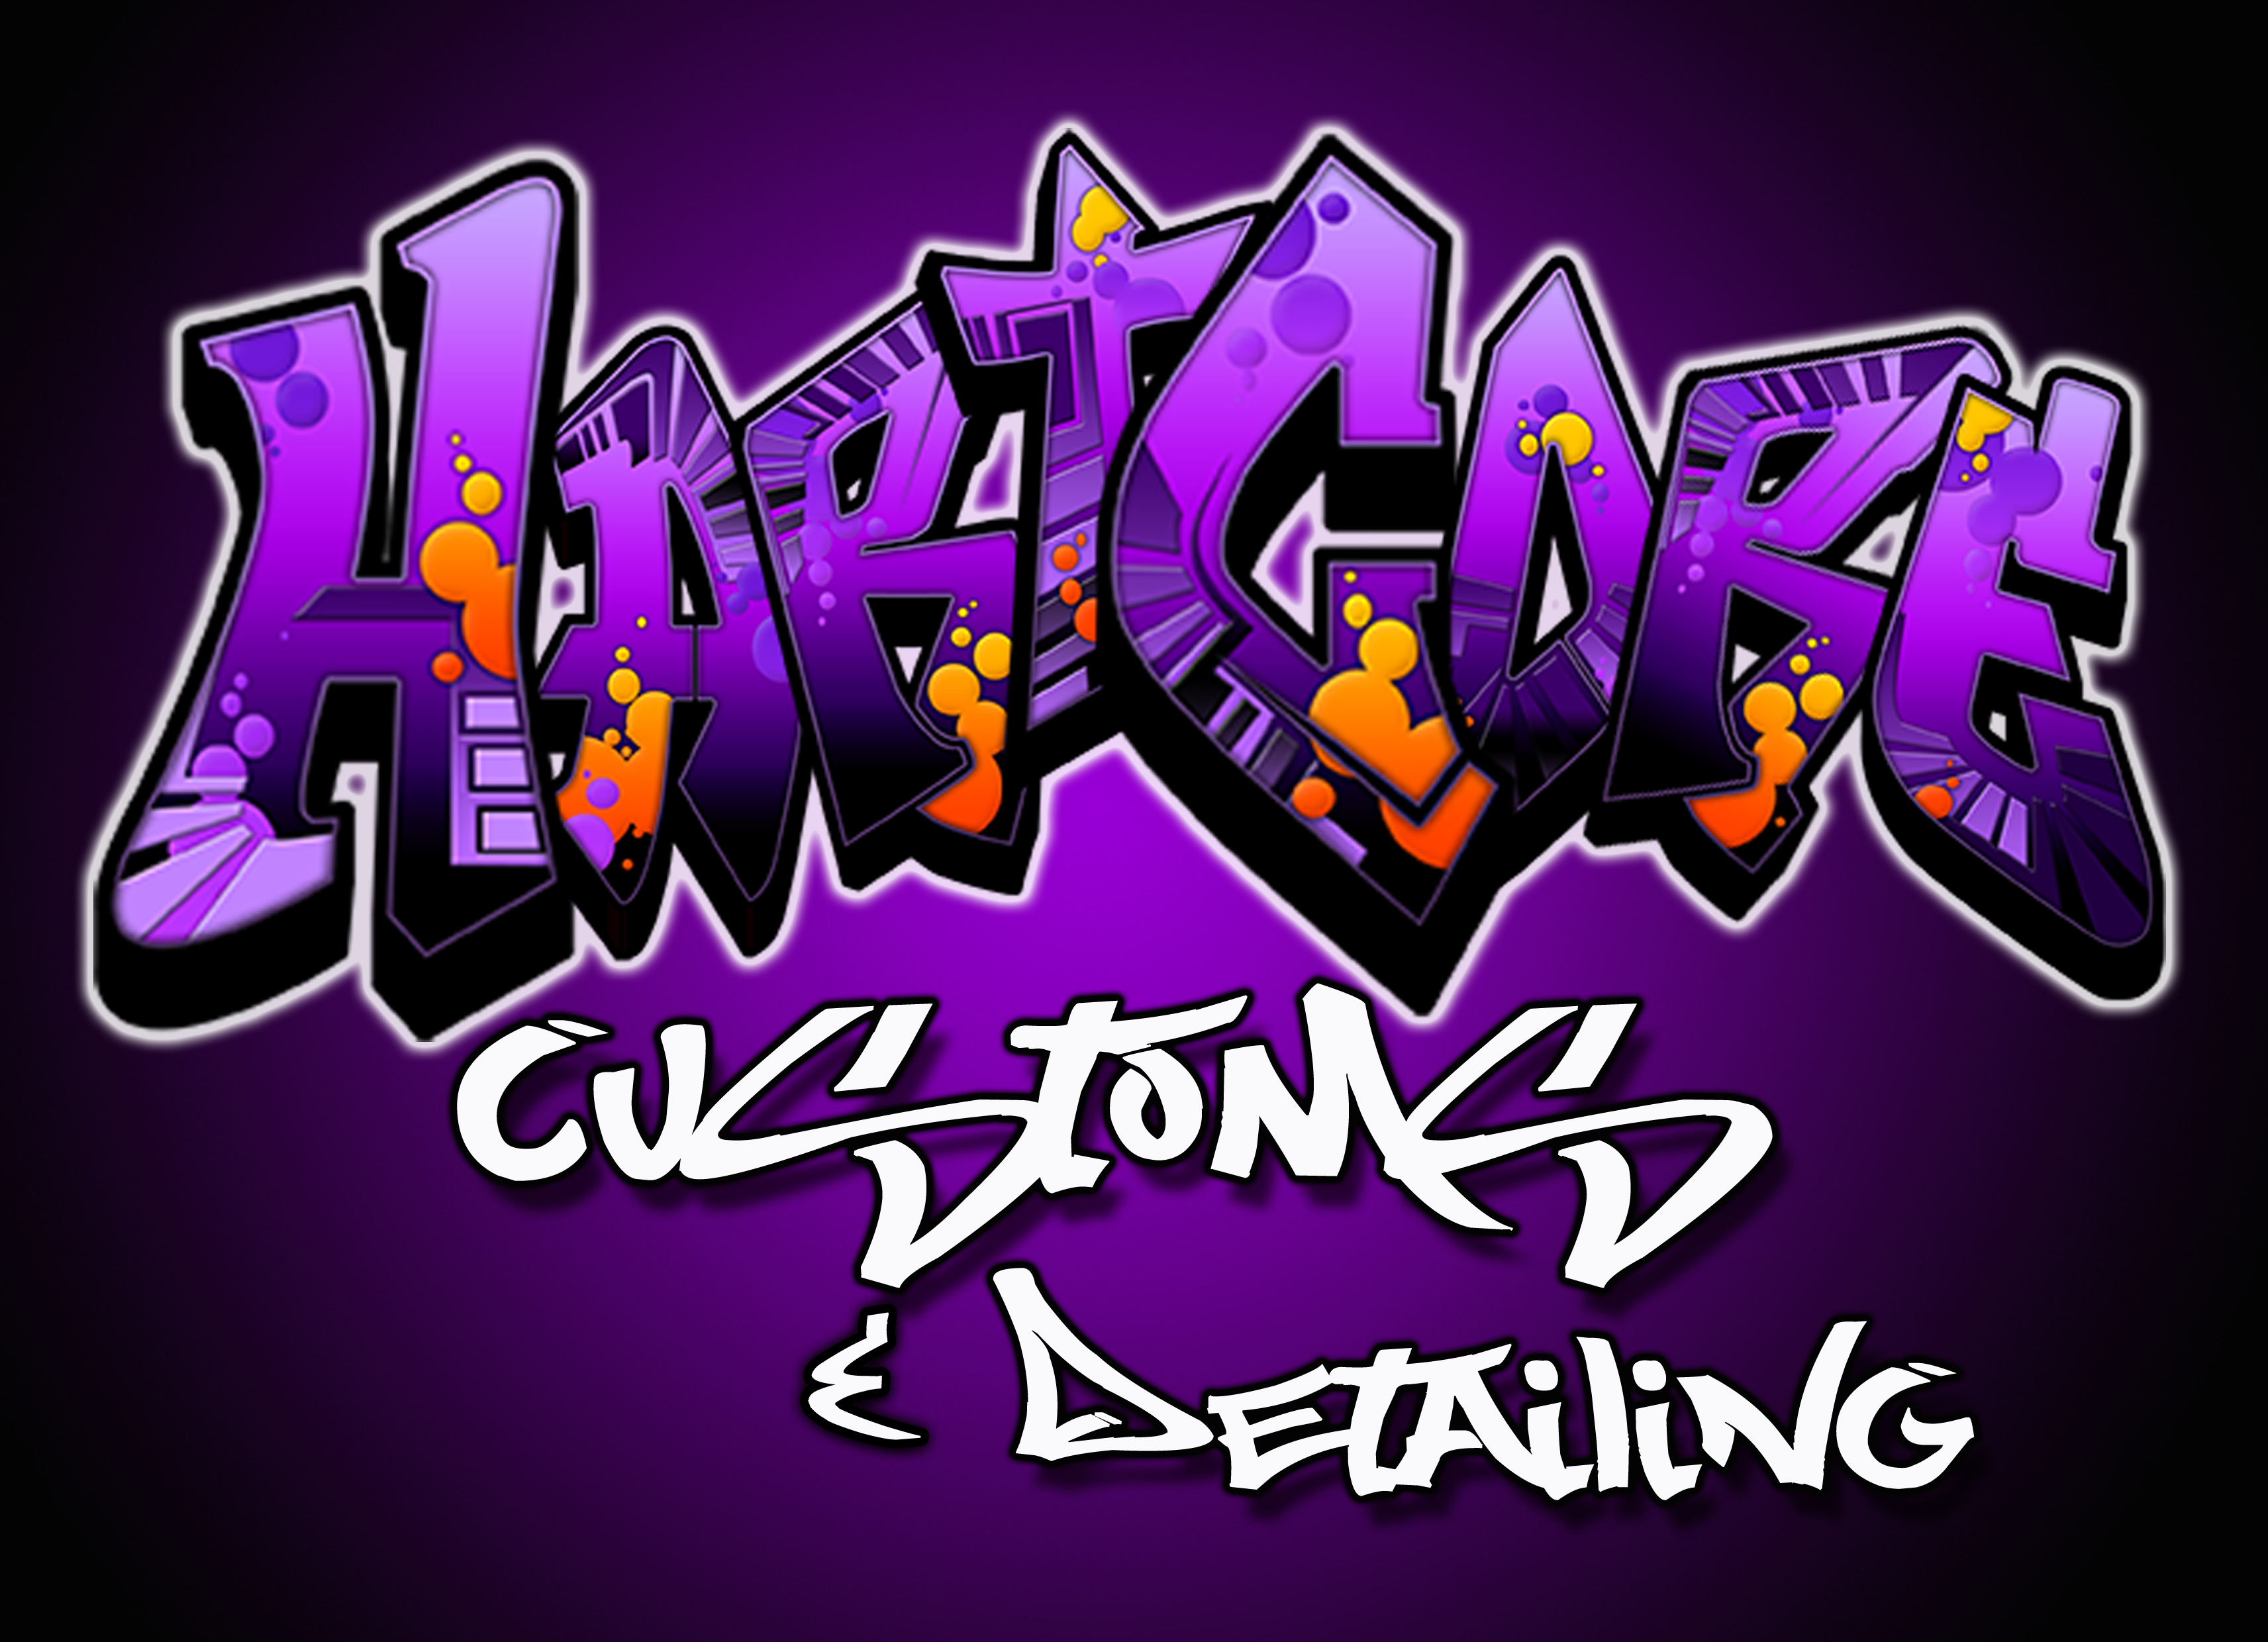 HartCore Customs & Detailing Logo